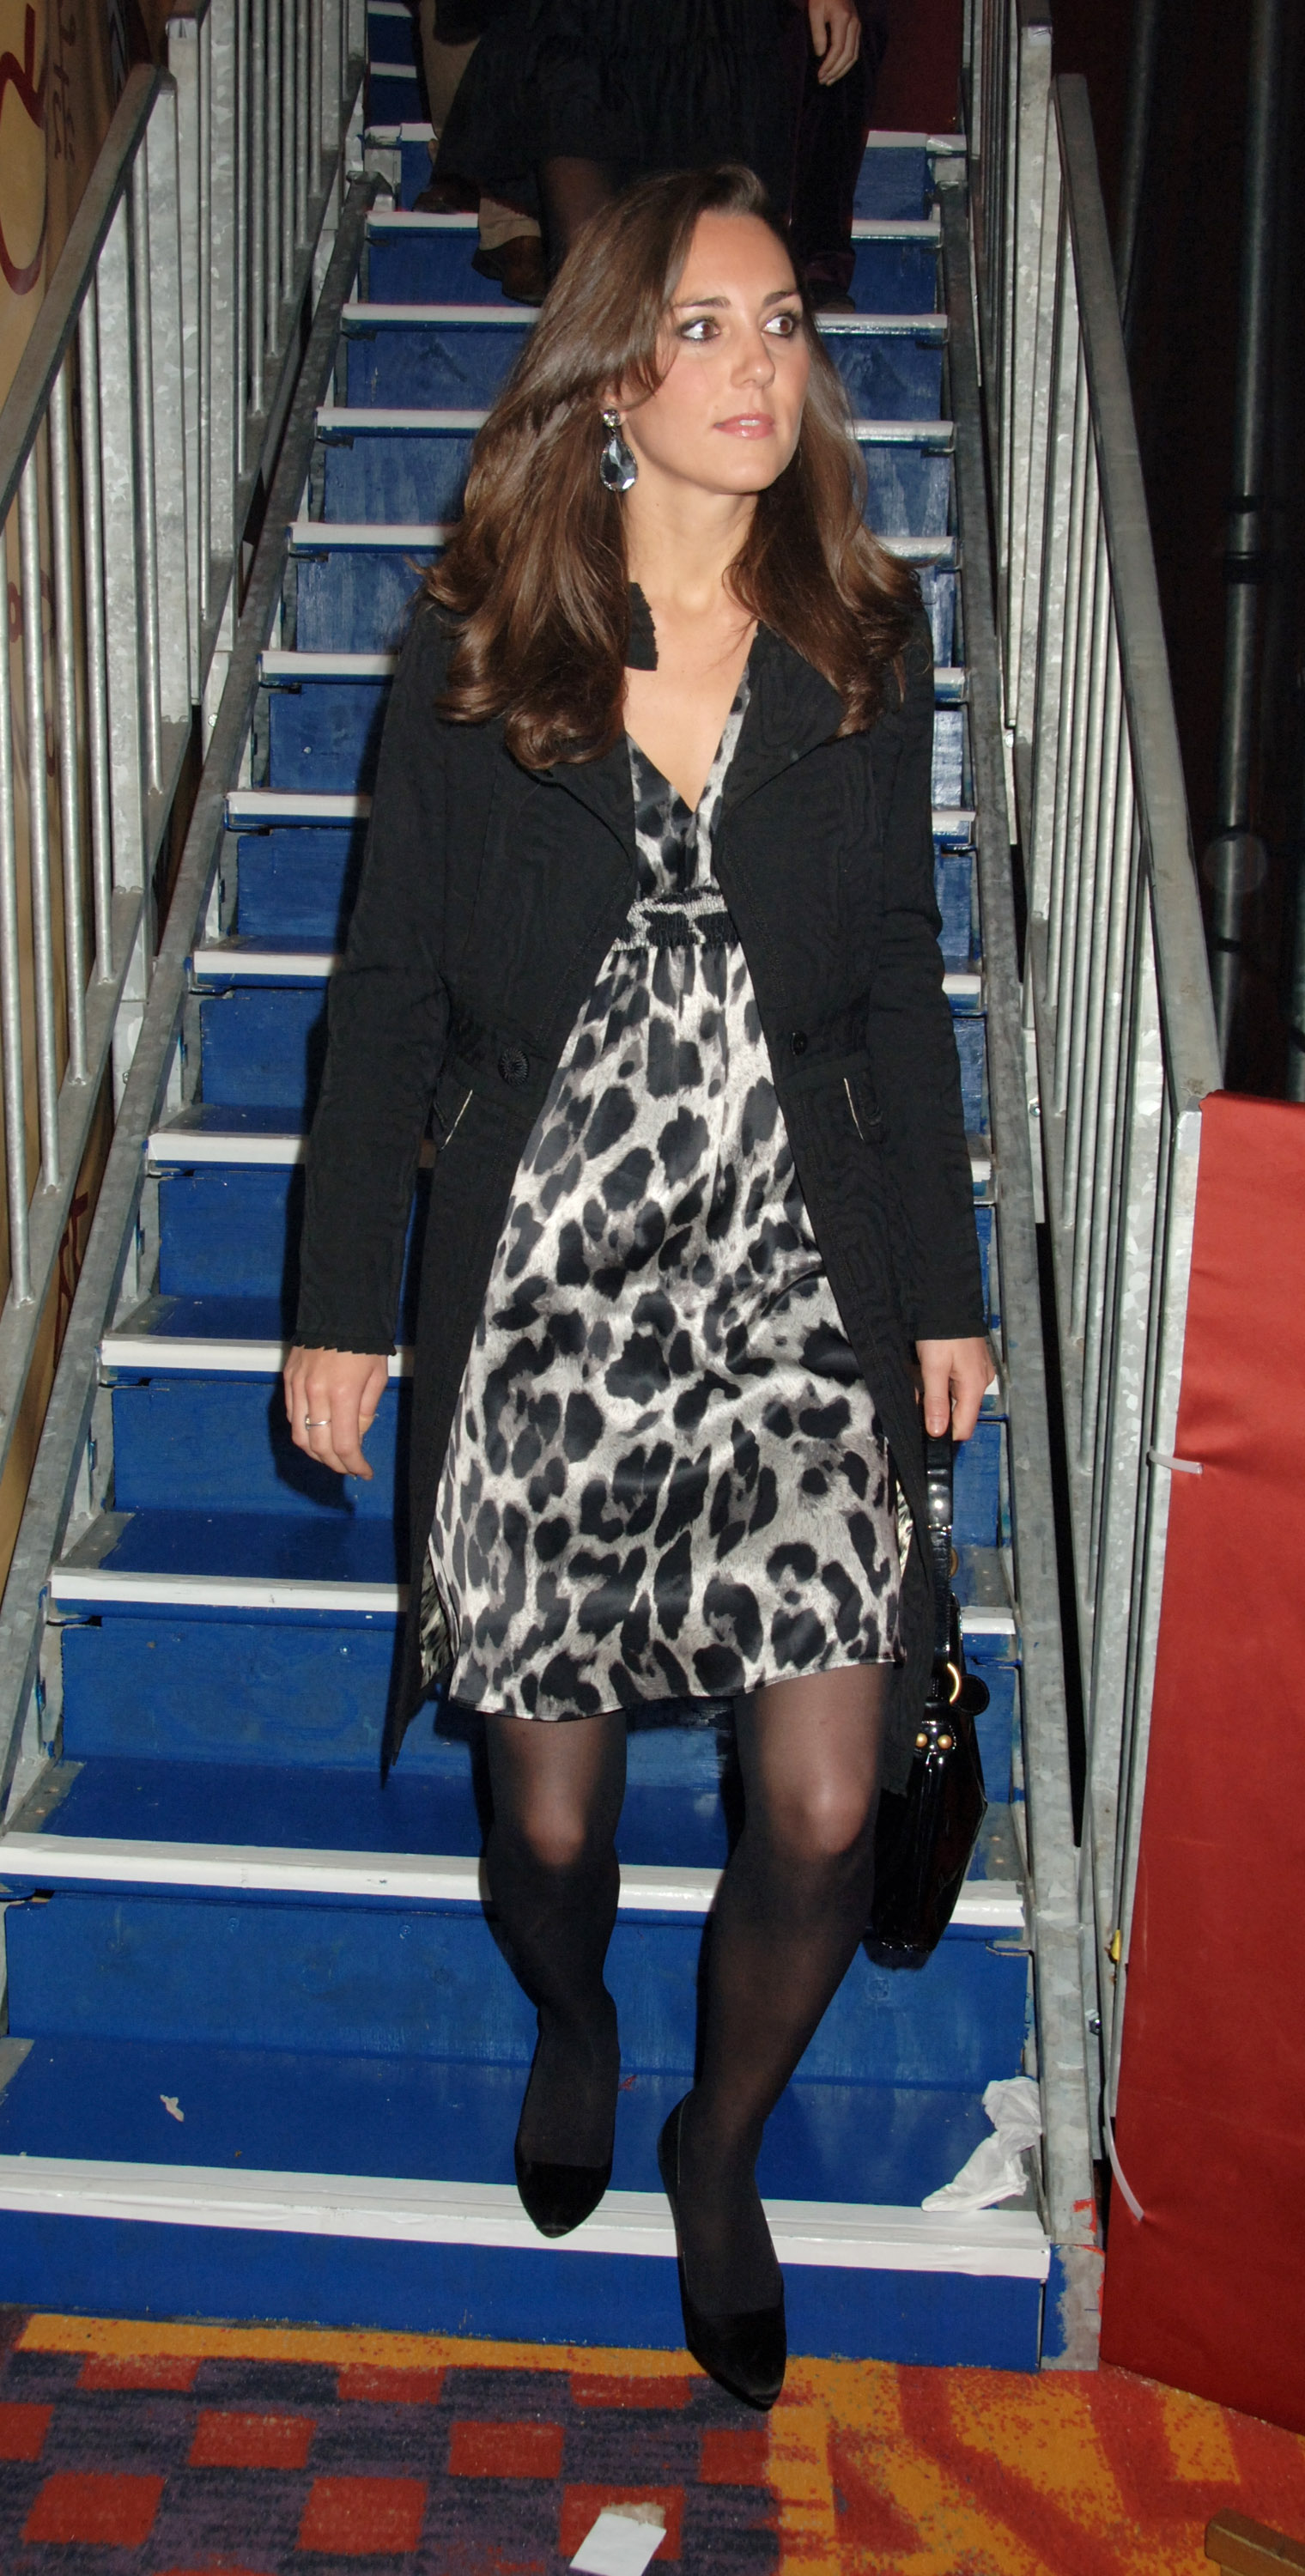 "<strong>Where the Wild Things Are</strong>                                   Middleton attended an after-party for the dance show ""AFRIKA! AFRIKA!"" in an animal-print frock. Jan. 17, 2008"